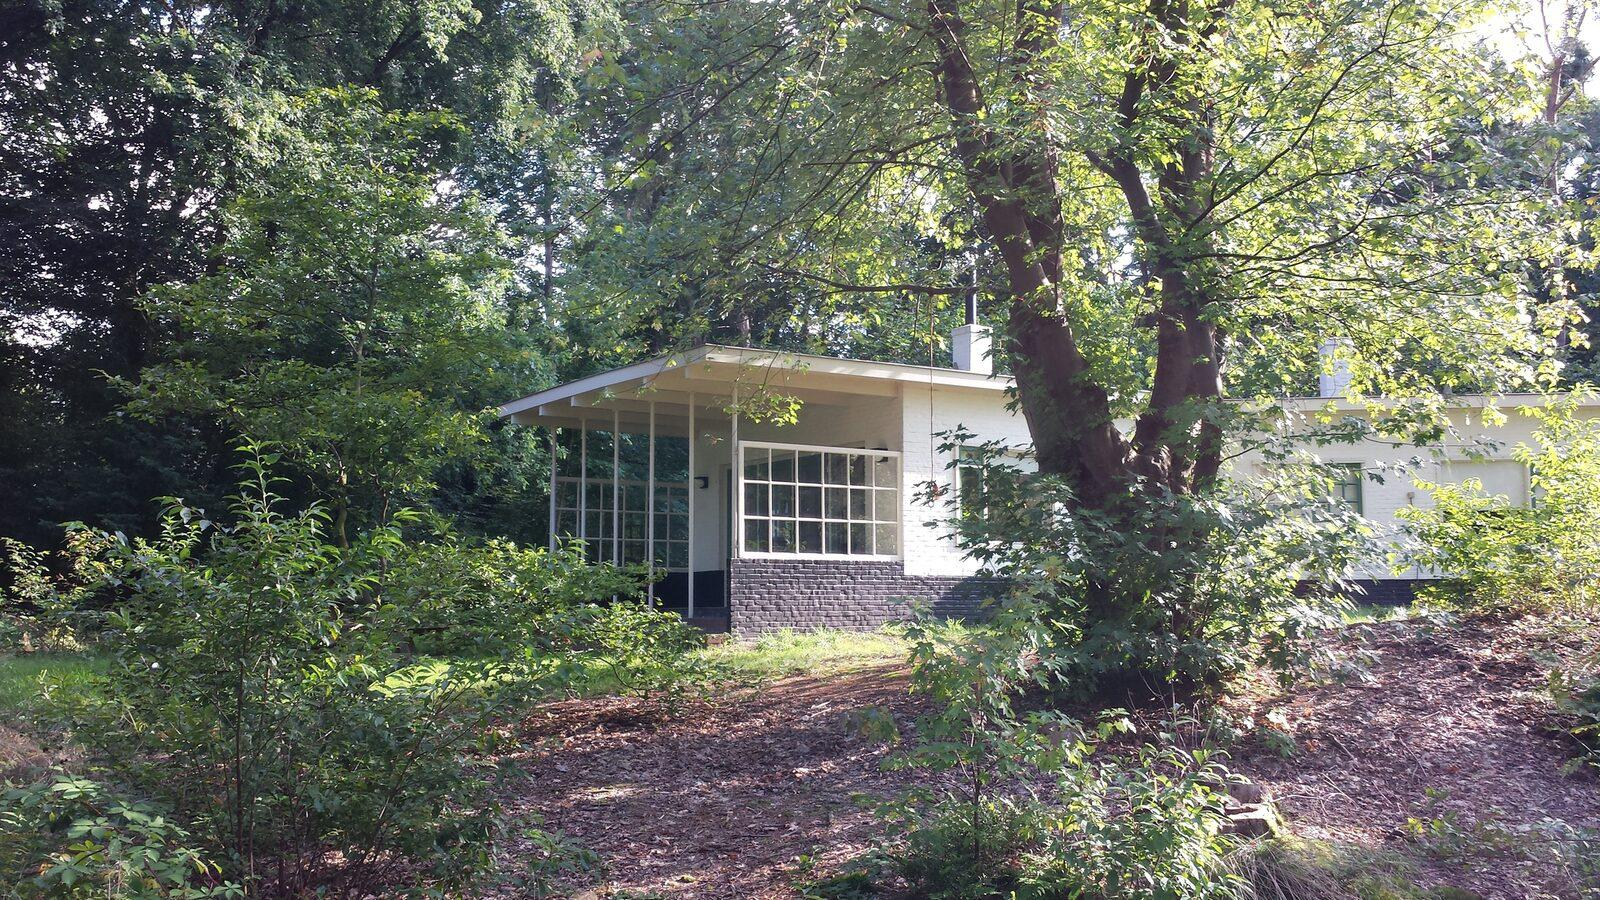 2 pers. Bungalow Monumentaal   Norgerberg